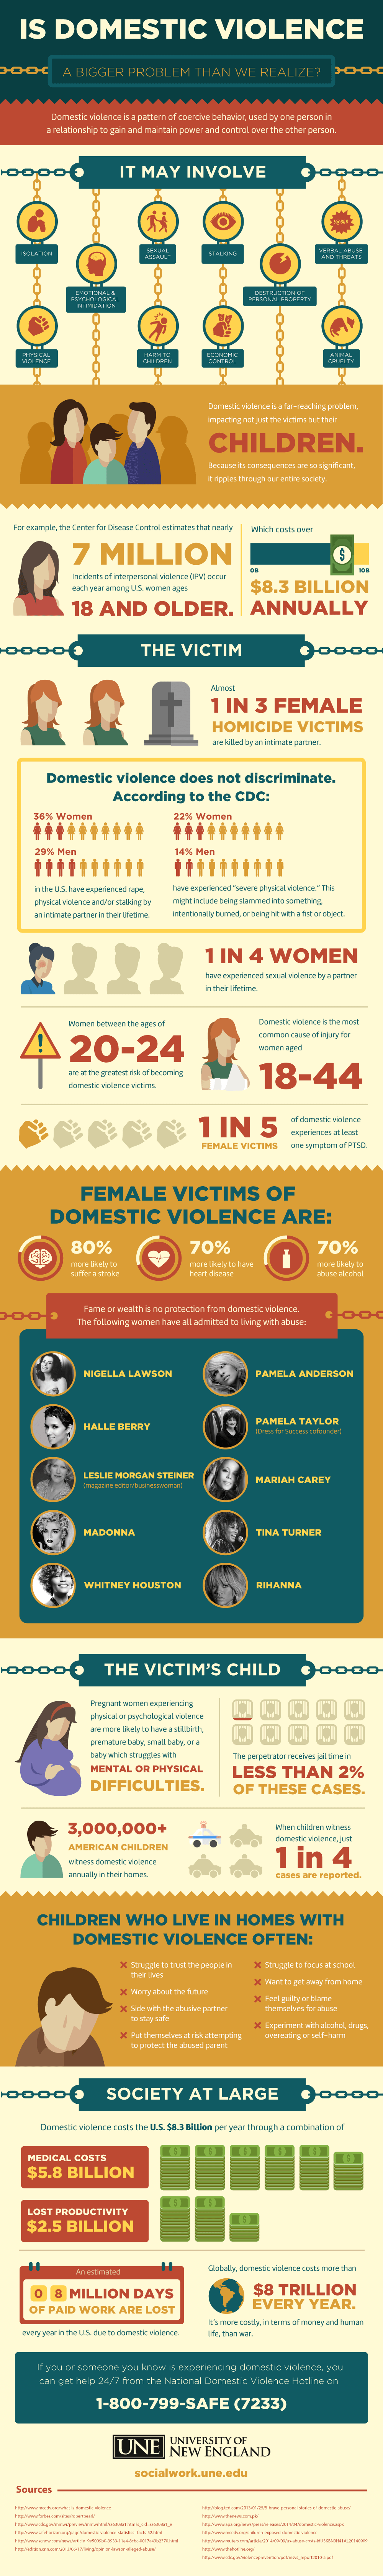 Is Domestic Violence a Bigger Problem Than We Realize?